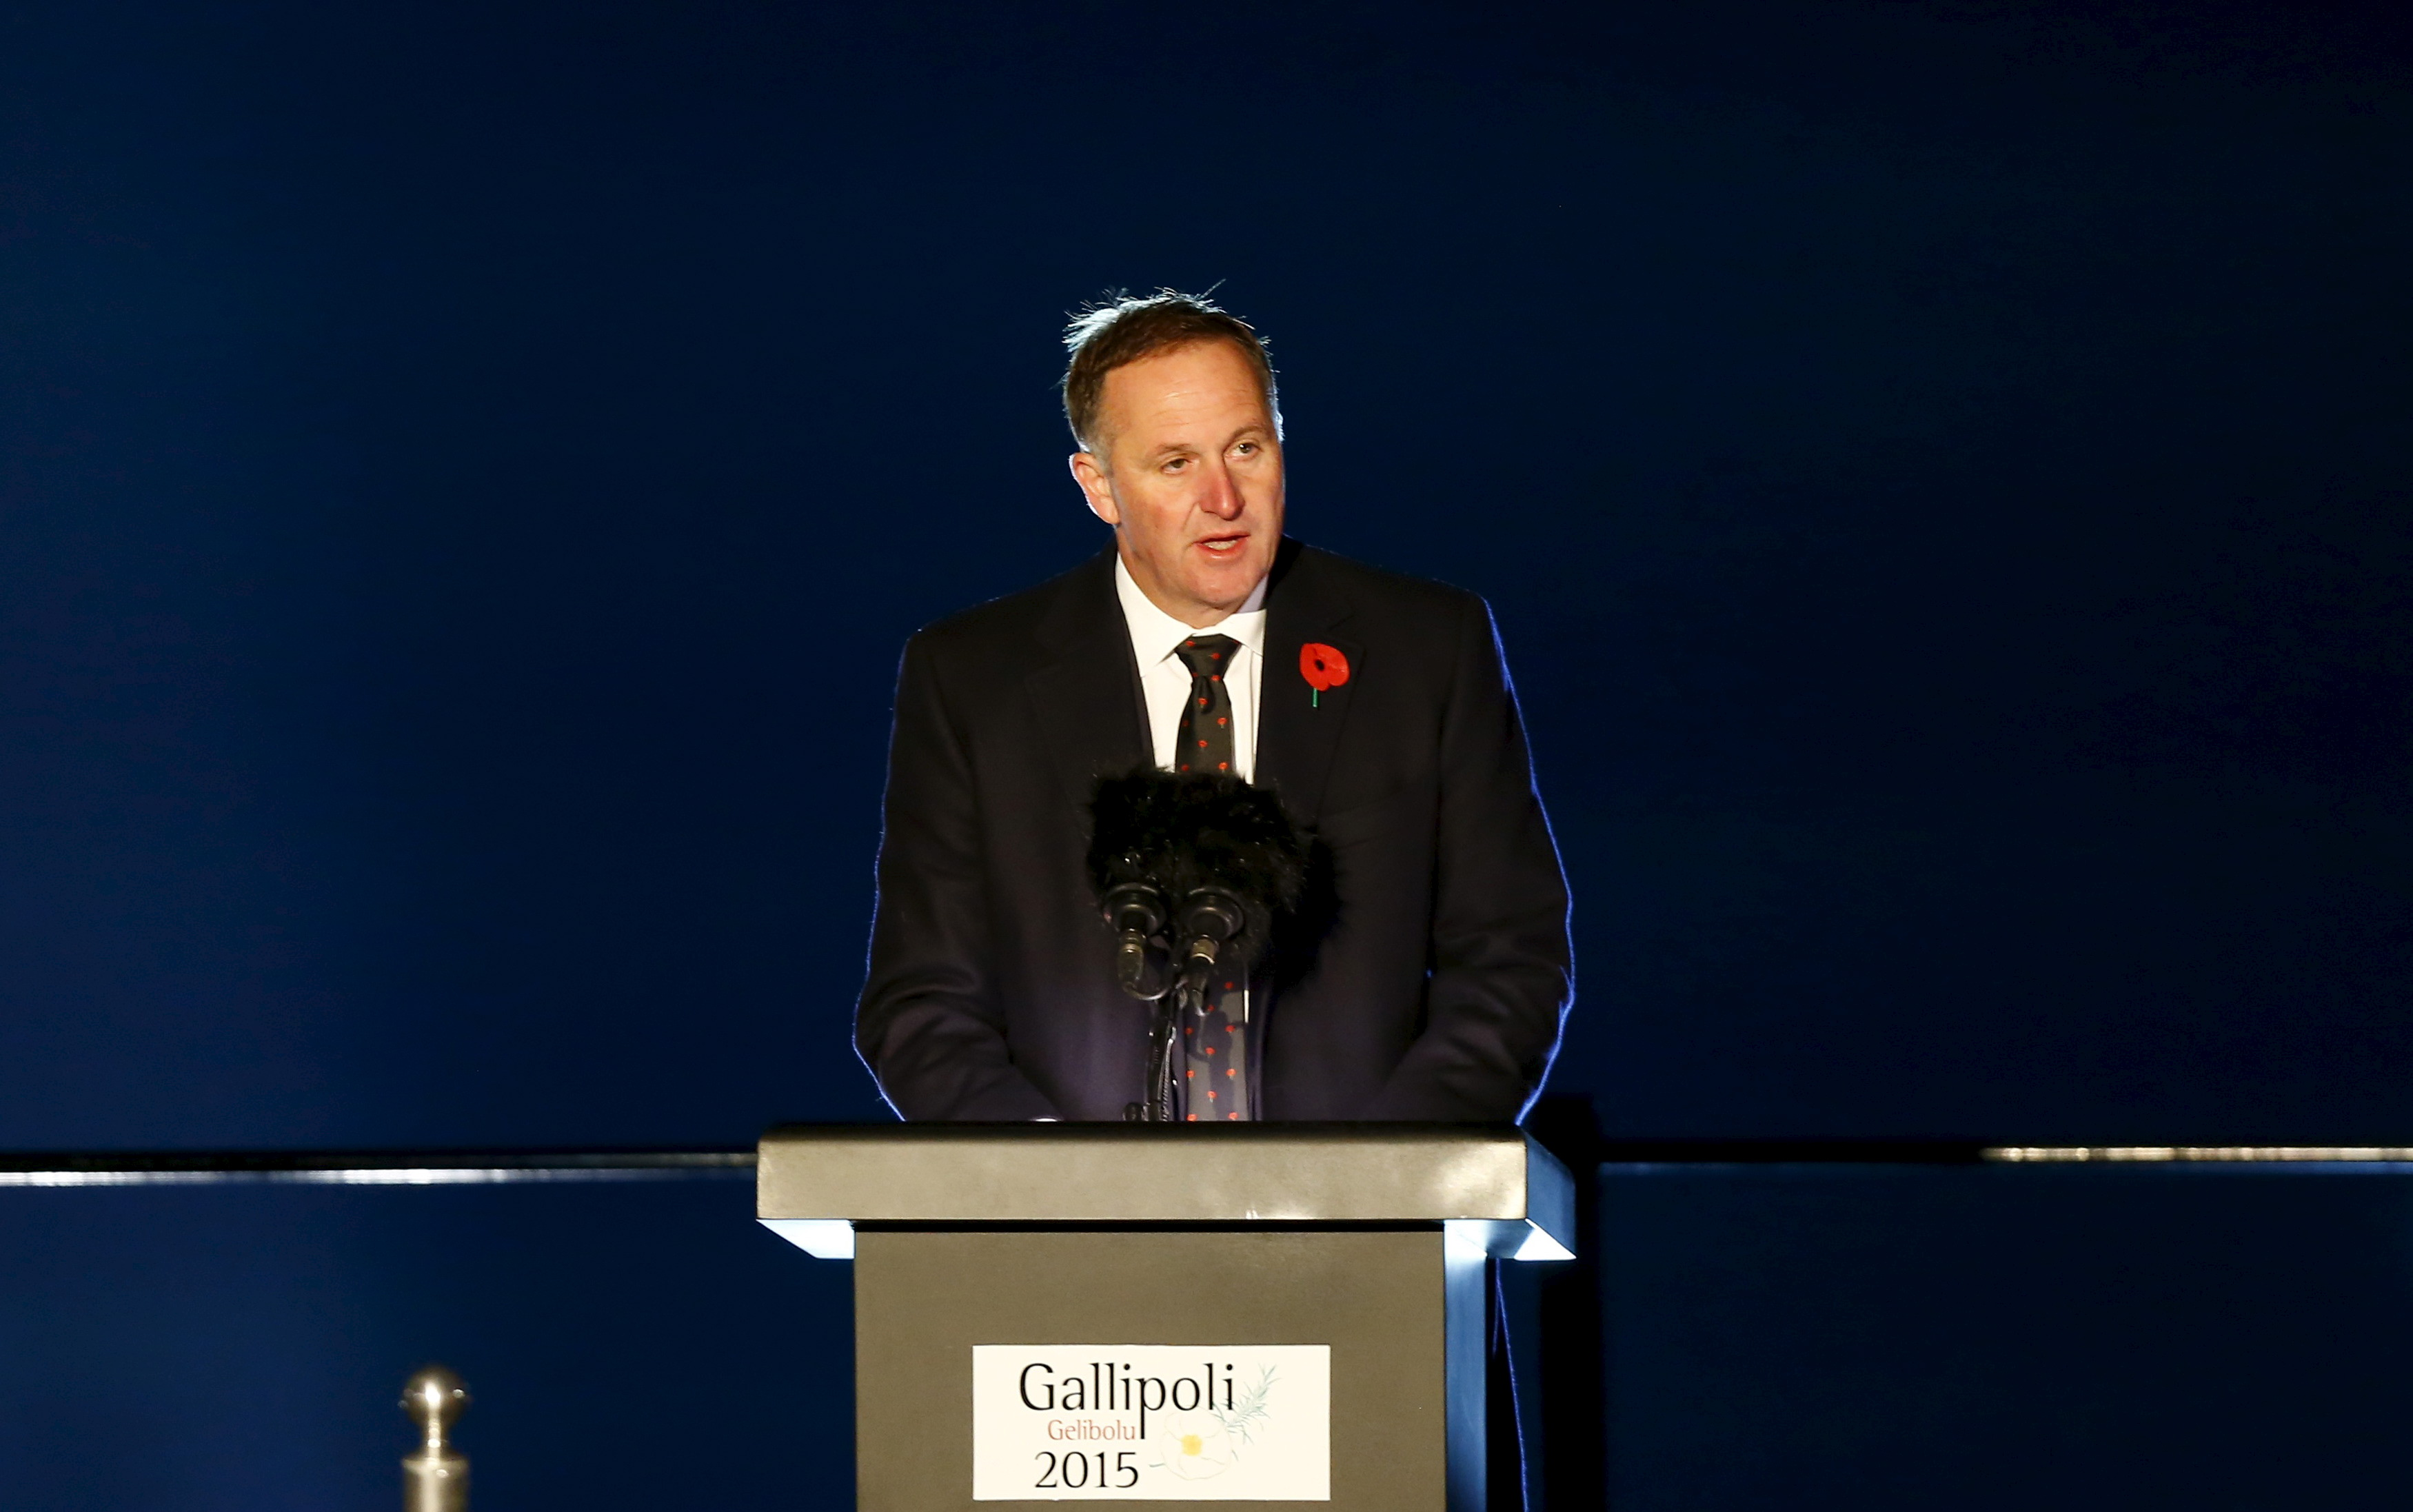 New Zealand's Prime Minister John Key speaks during a dawn ceremony marking the 100th anniversary of the Battle of Gallipoli, at Anzac Cove in Gallipoli April 25, 2015